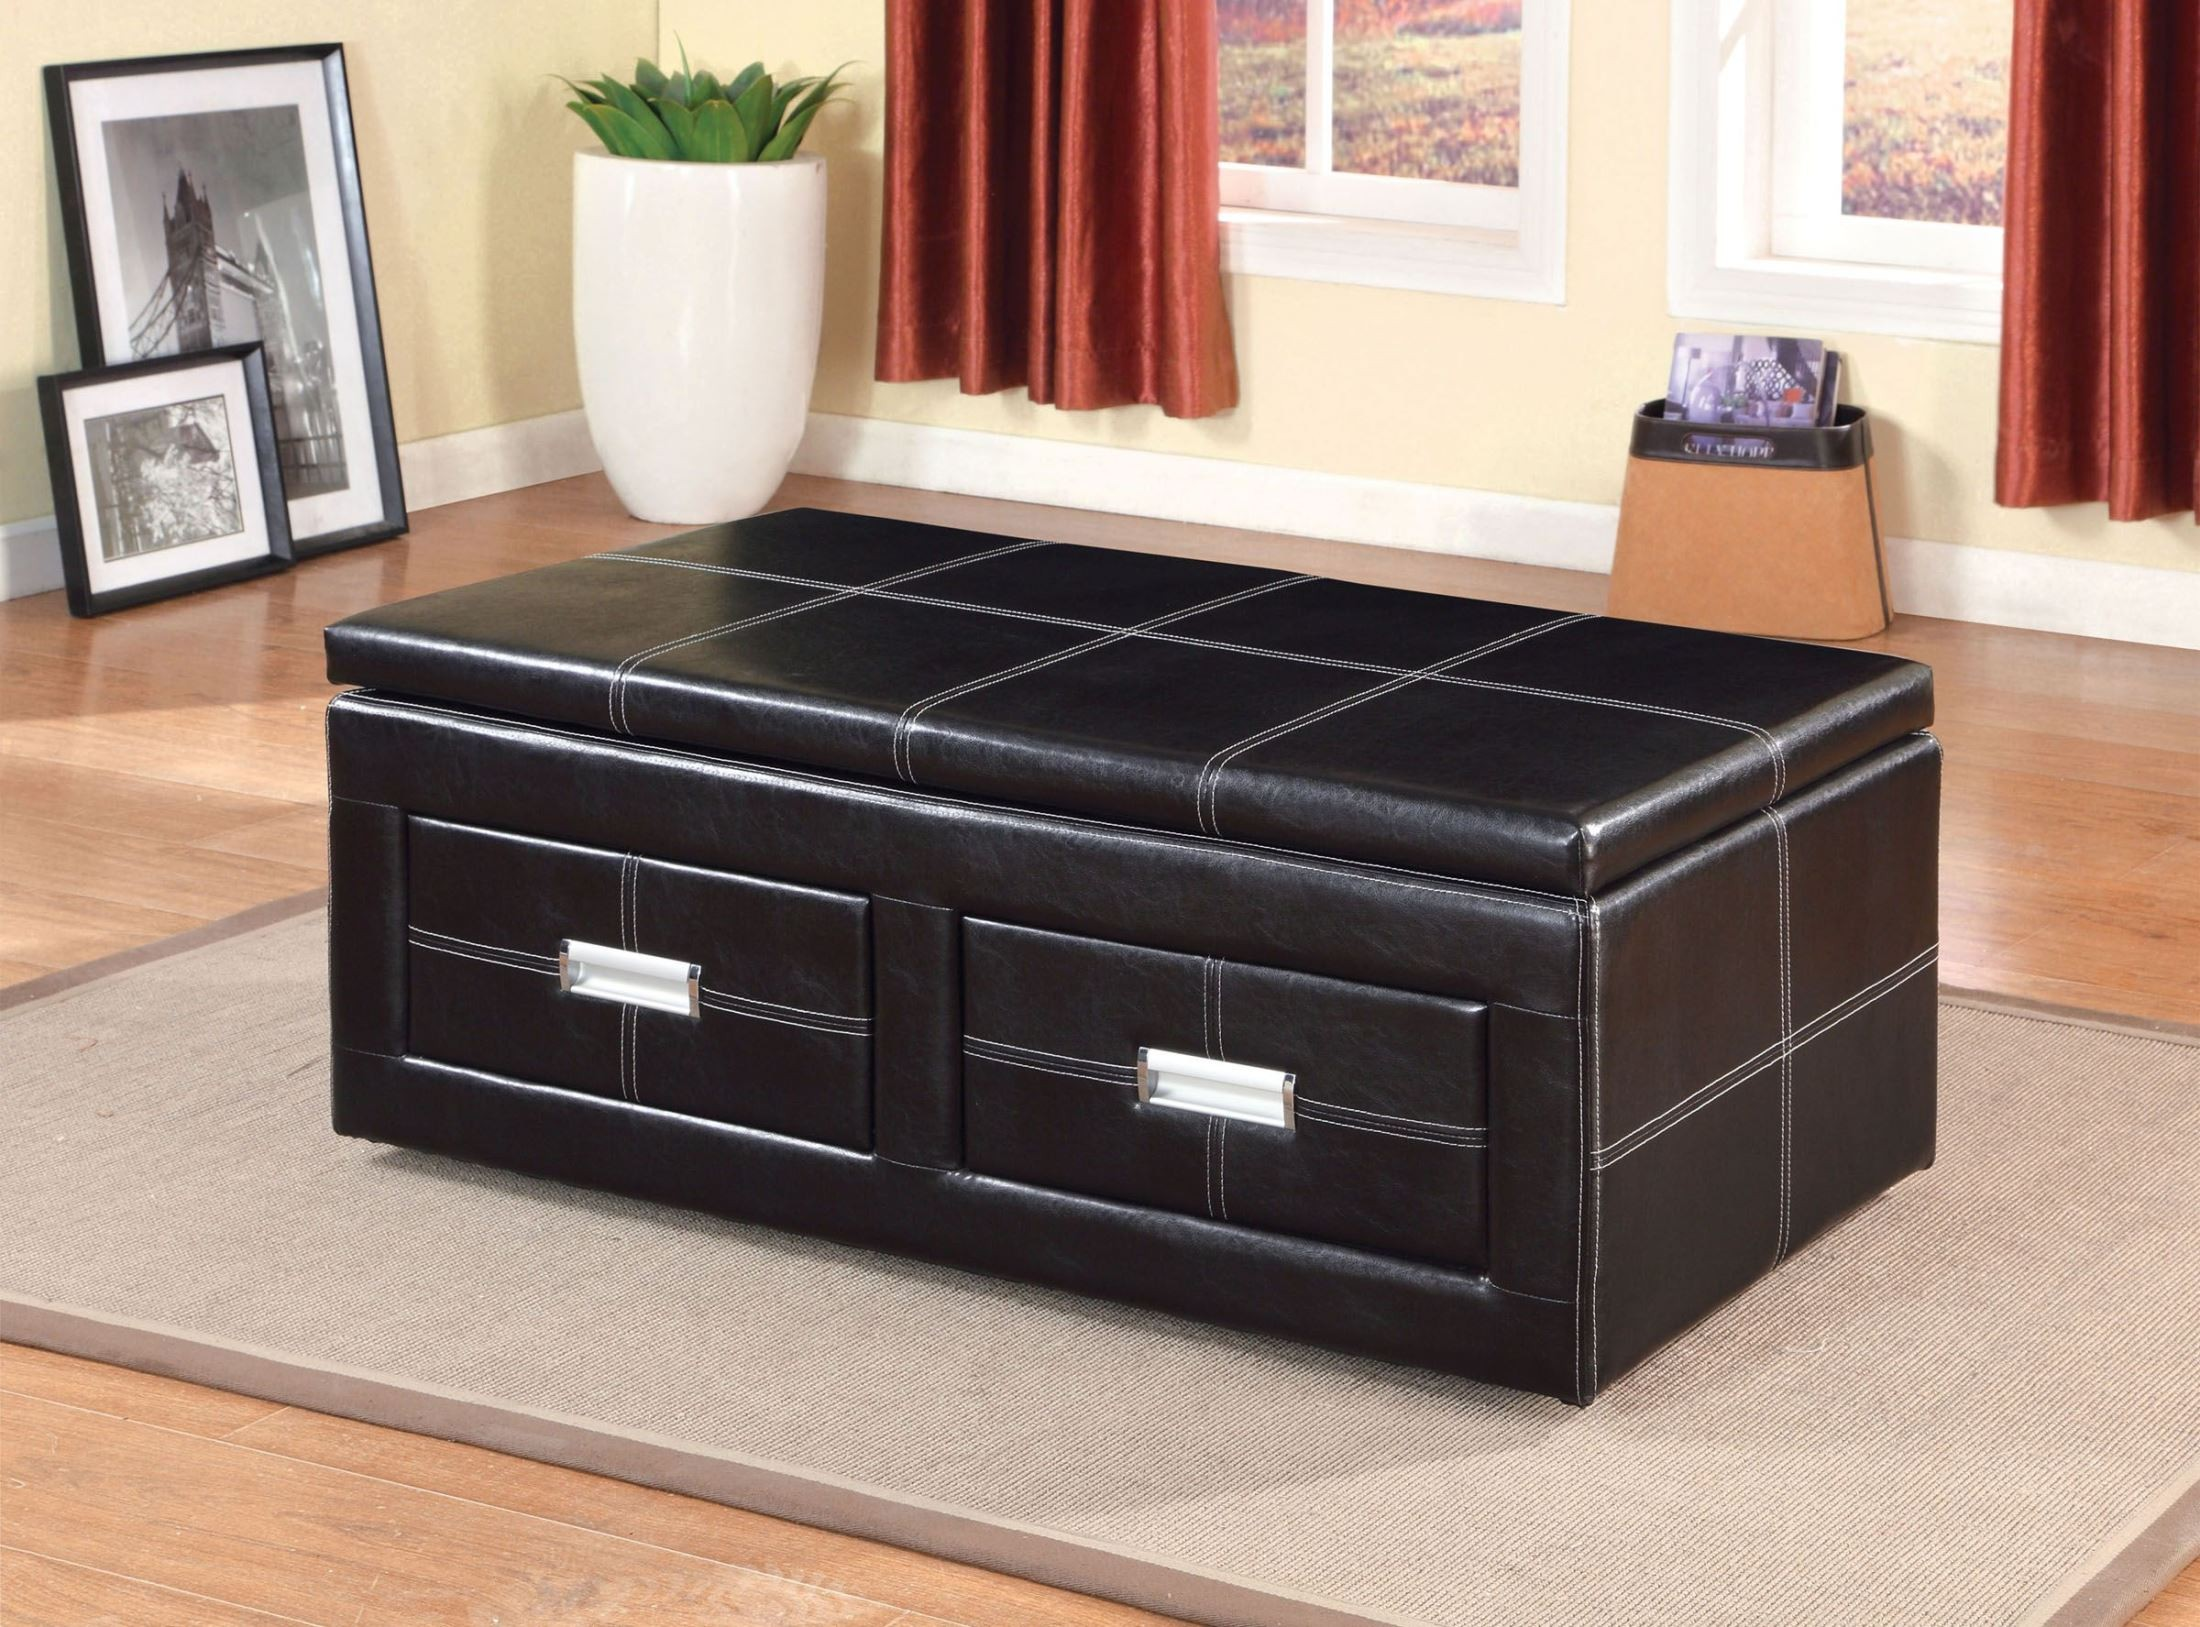 Ostel 2 Drawer Lift Top Storage Ottoman From Furniture Of